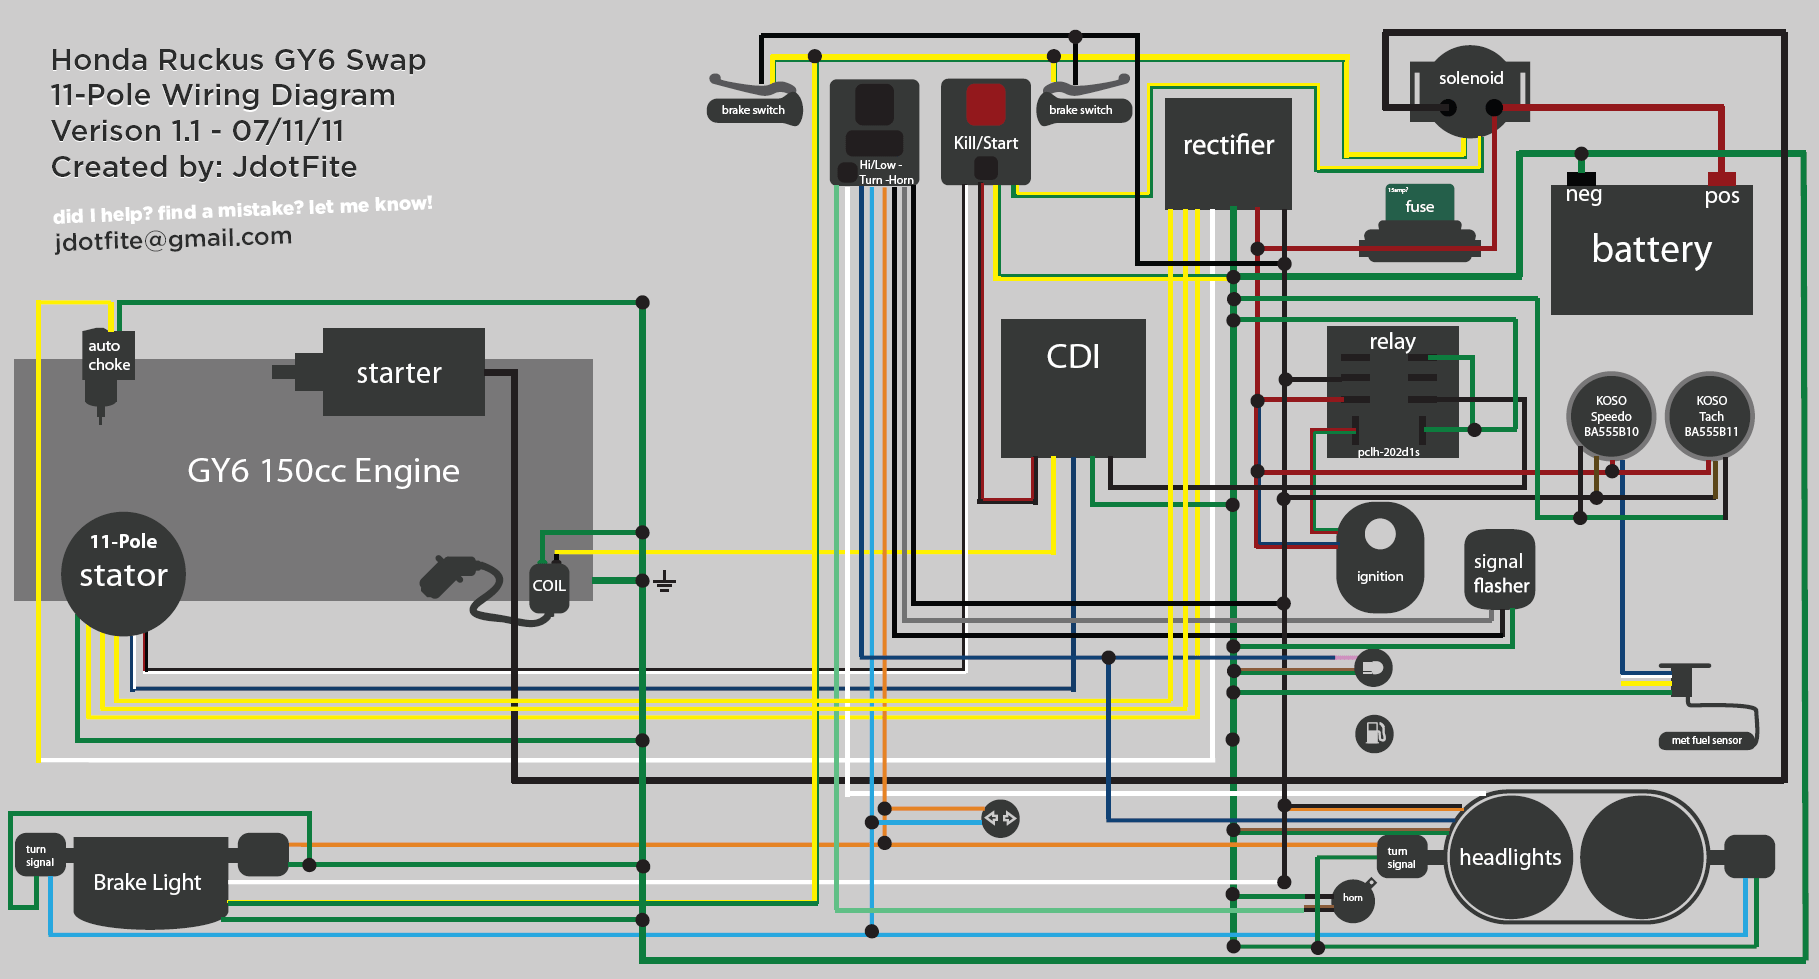 ruckus gy6 wiring diagram gy6 lighting diagram gy6 regulator wiring diagram \u2022 wiring dr 50 midi moto wiring diagram at gsmx.co